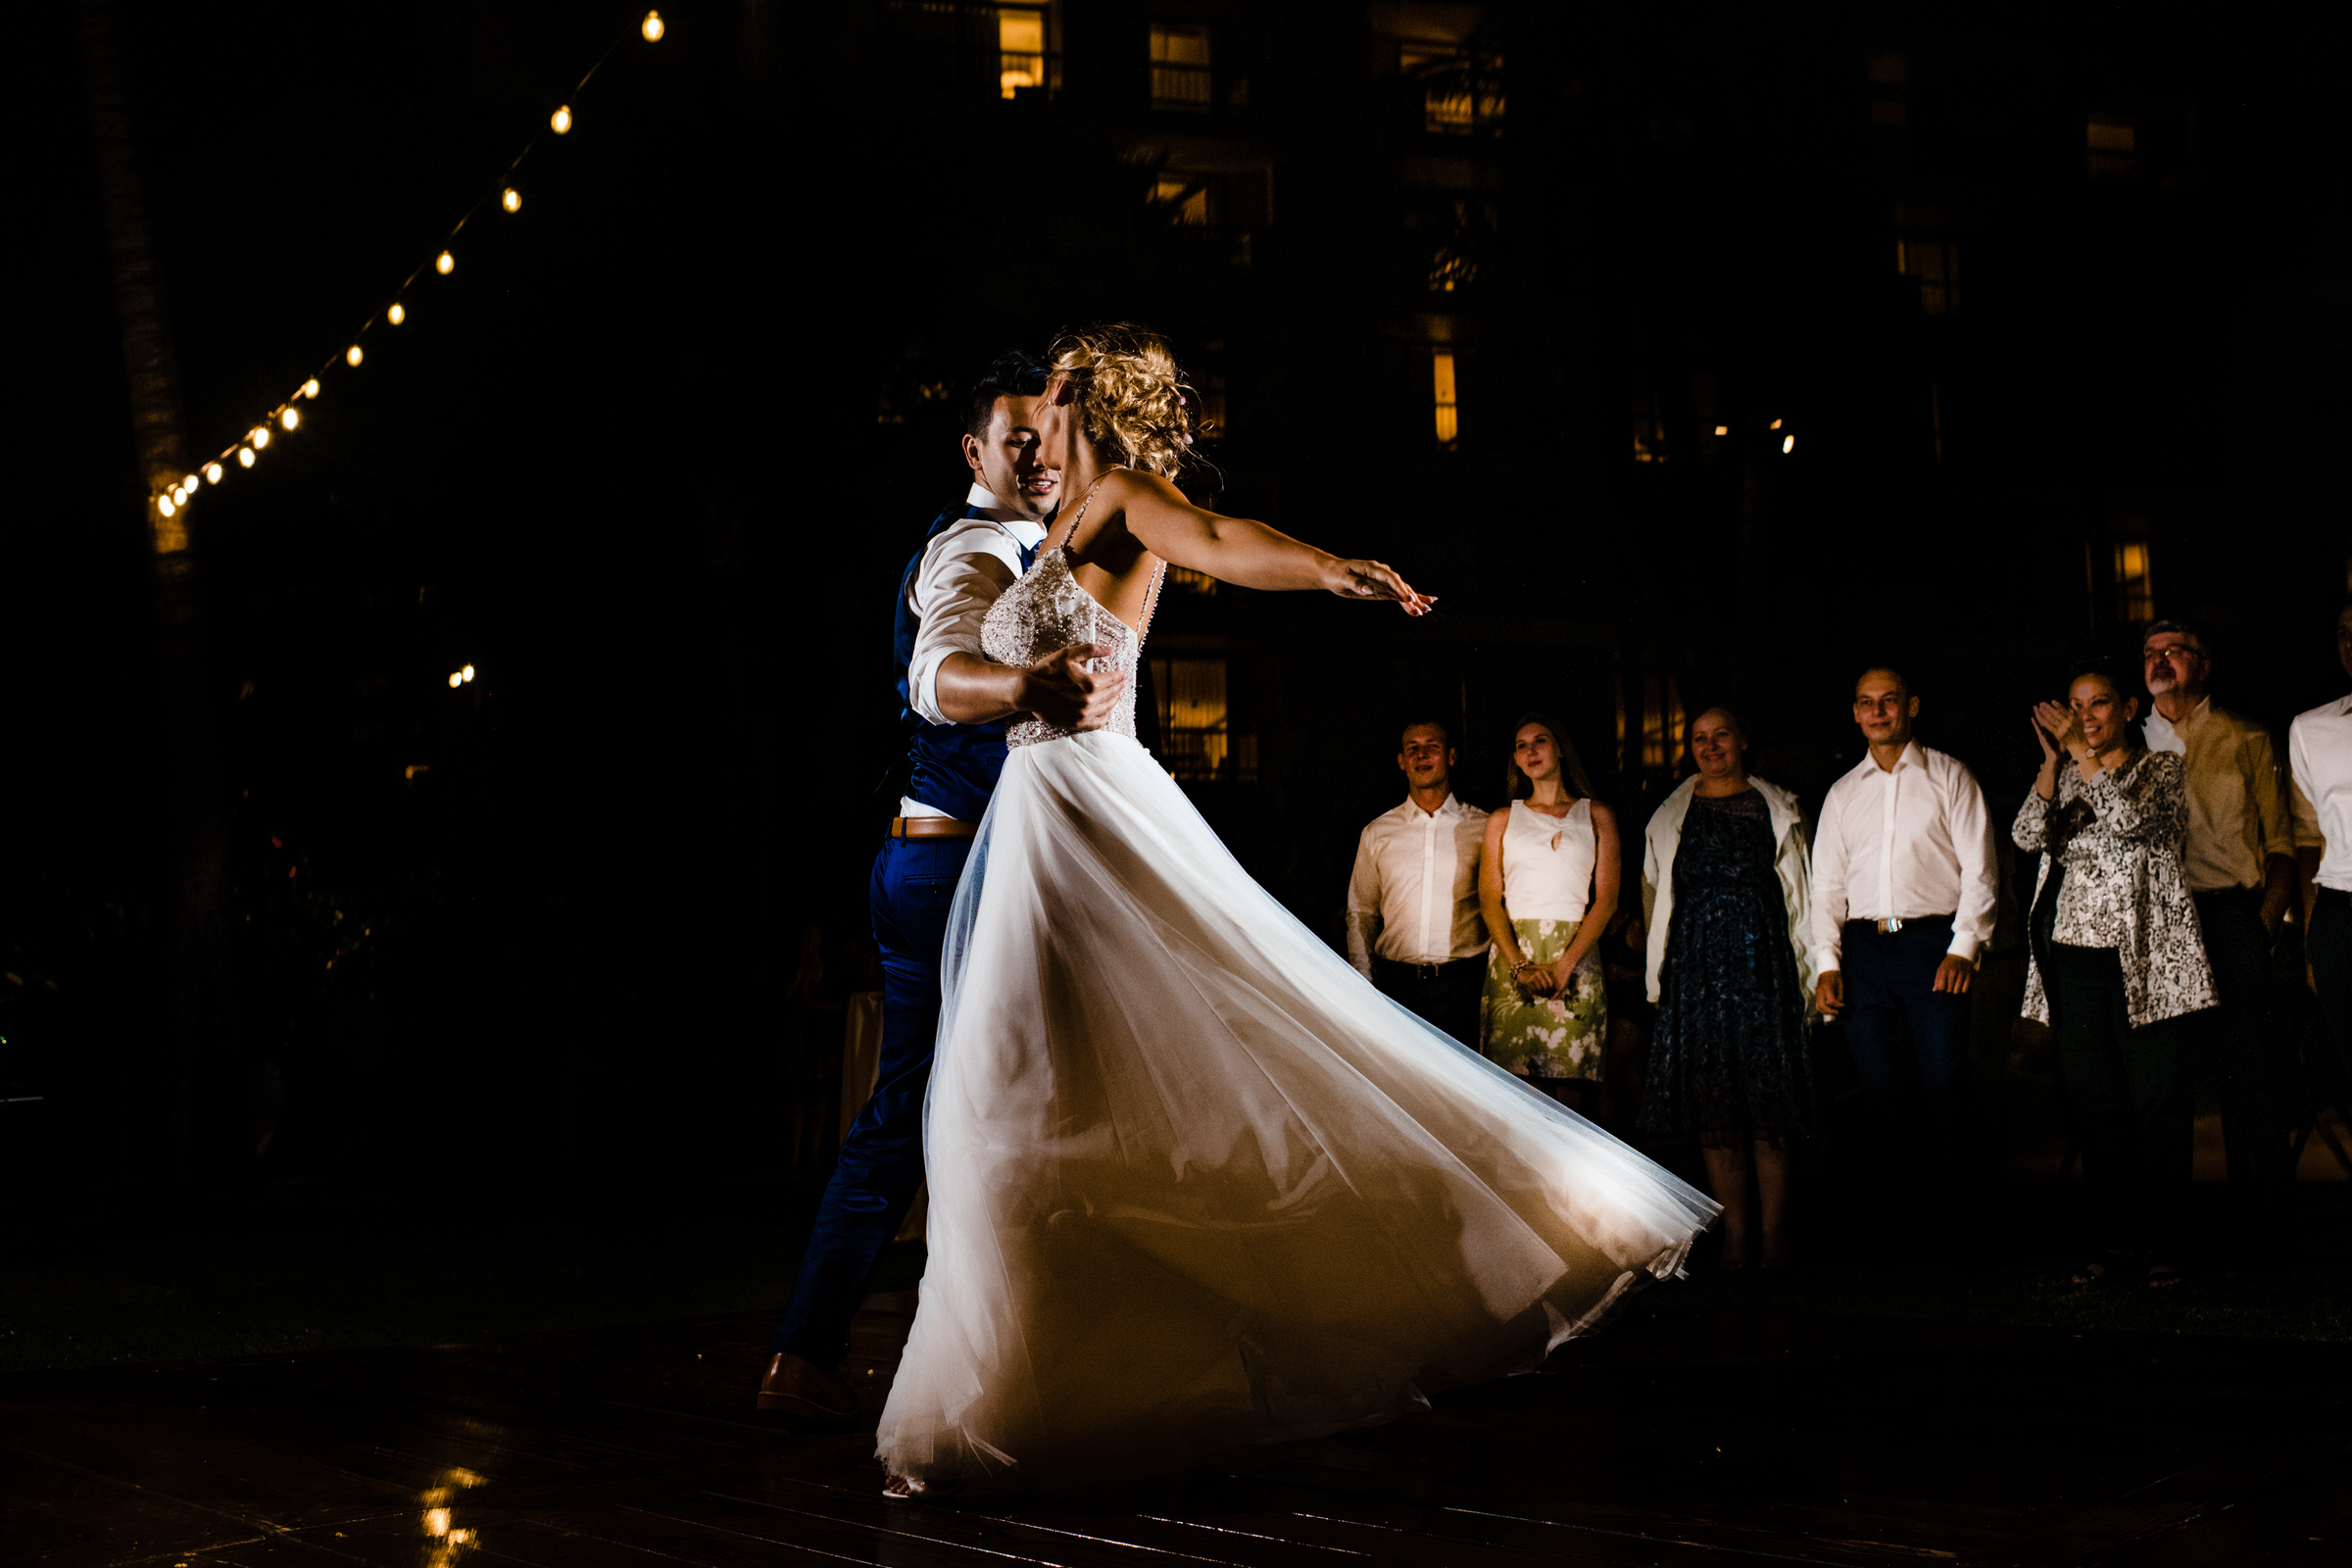 Dramatic first dance - photo by Angela Nelson Photography